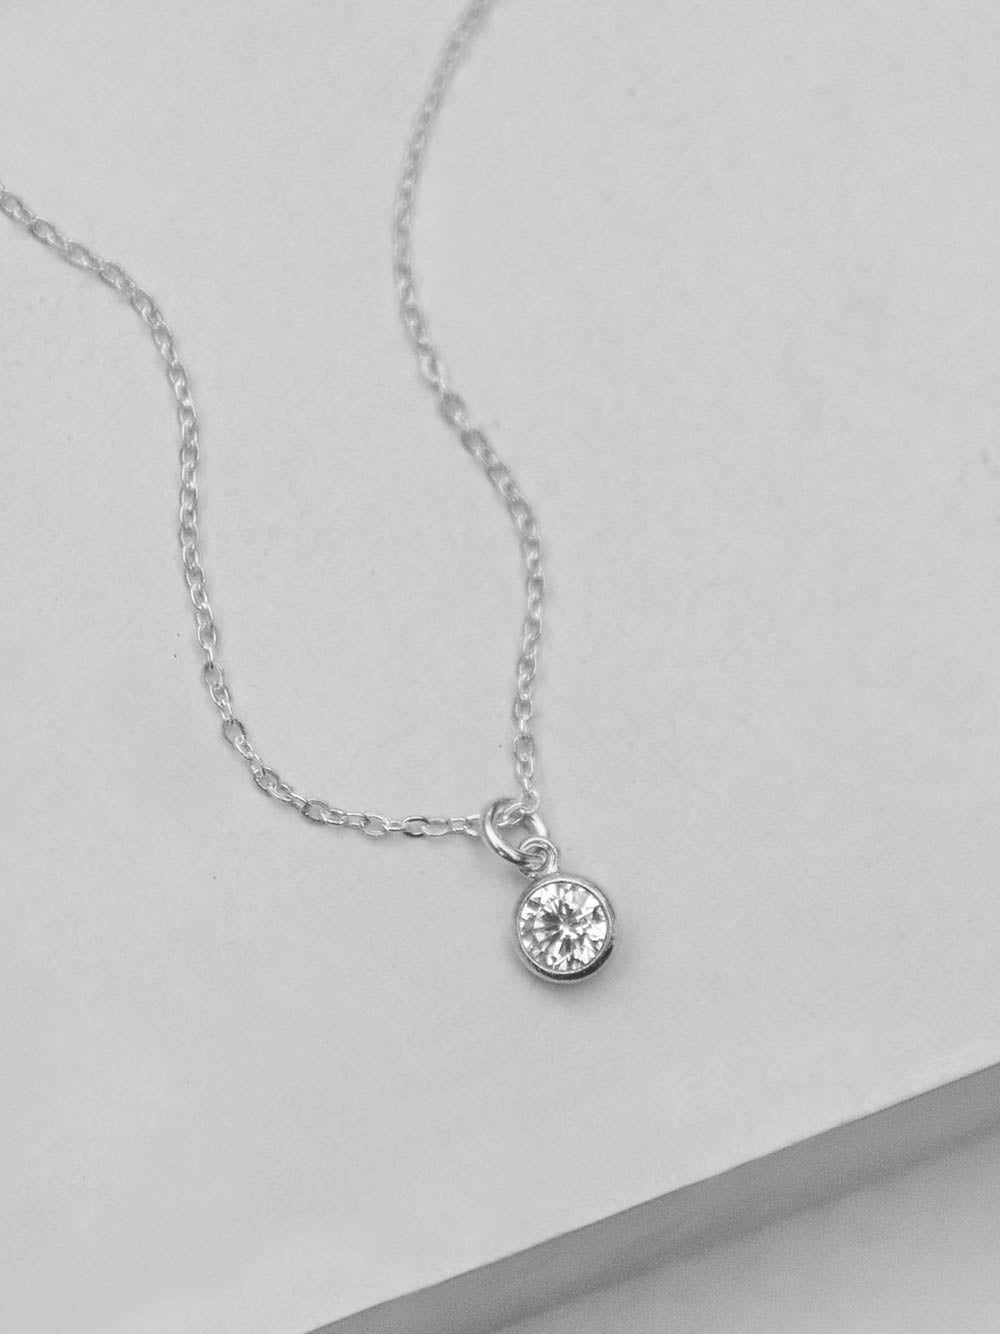 Diamond Drop Necklace - Sterling Silver